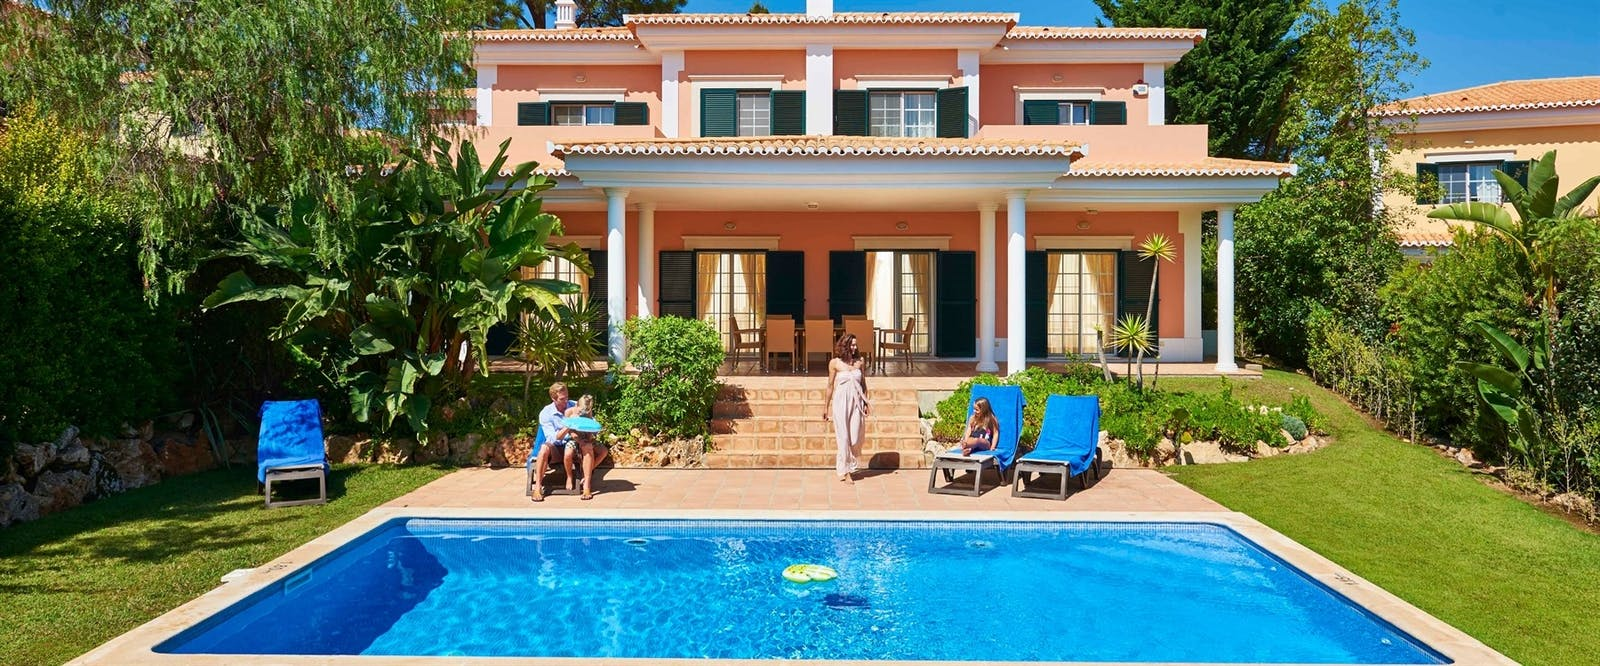 Luxury Villa Exterior at Martinhal Quinta Family Resort, Algarve